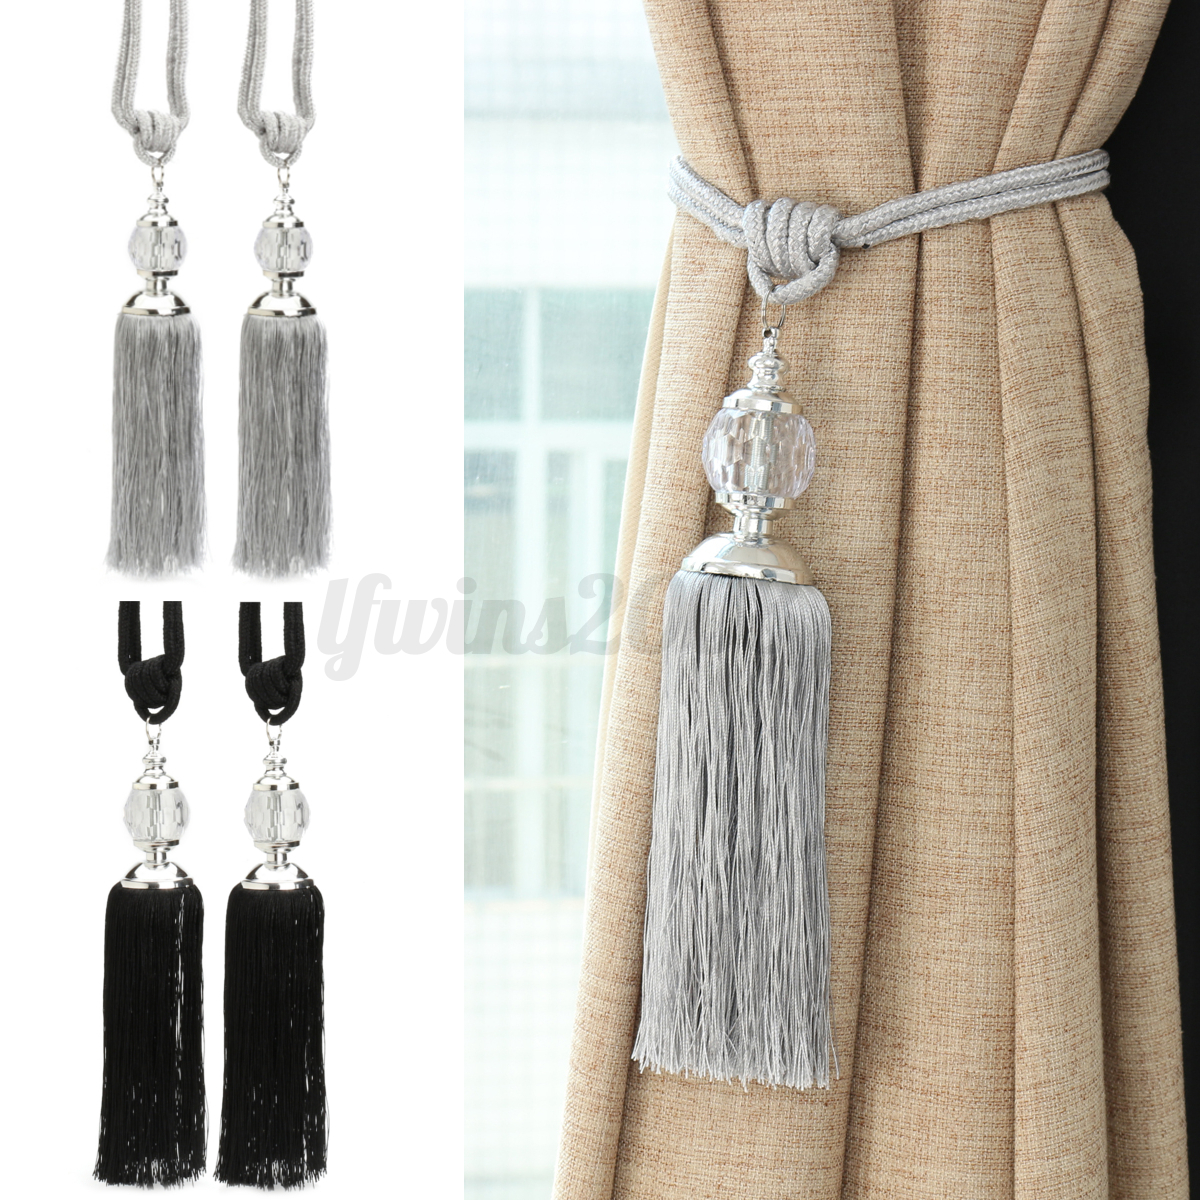 Drape Ties: 2Pcs New Curtain Tiebacks Luxury Tassel Beaded Holdbacks